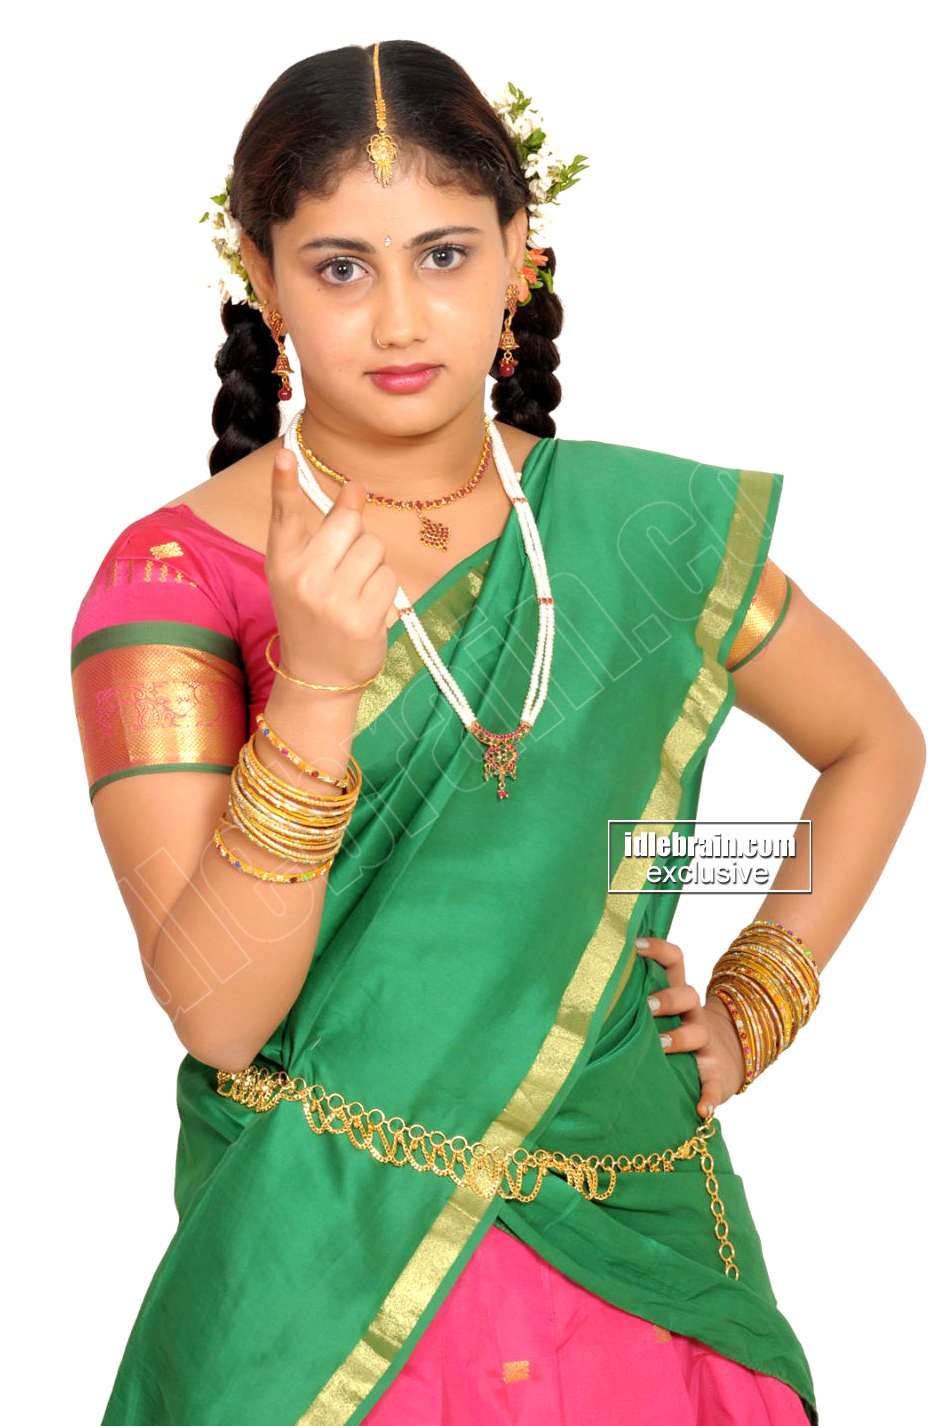 cute and hot tamil babe amrutha valli photoshoot gallery in tradtional ...